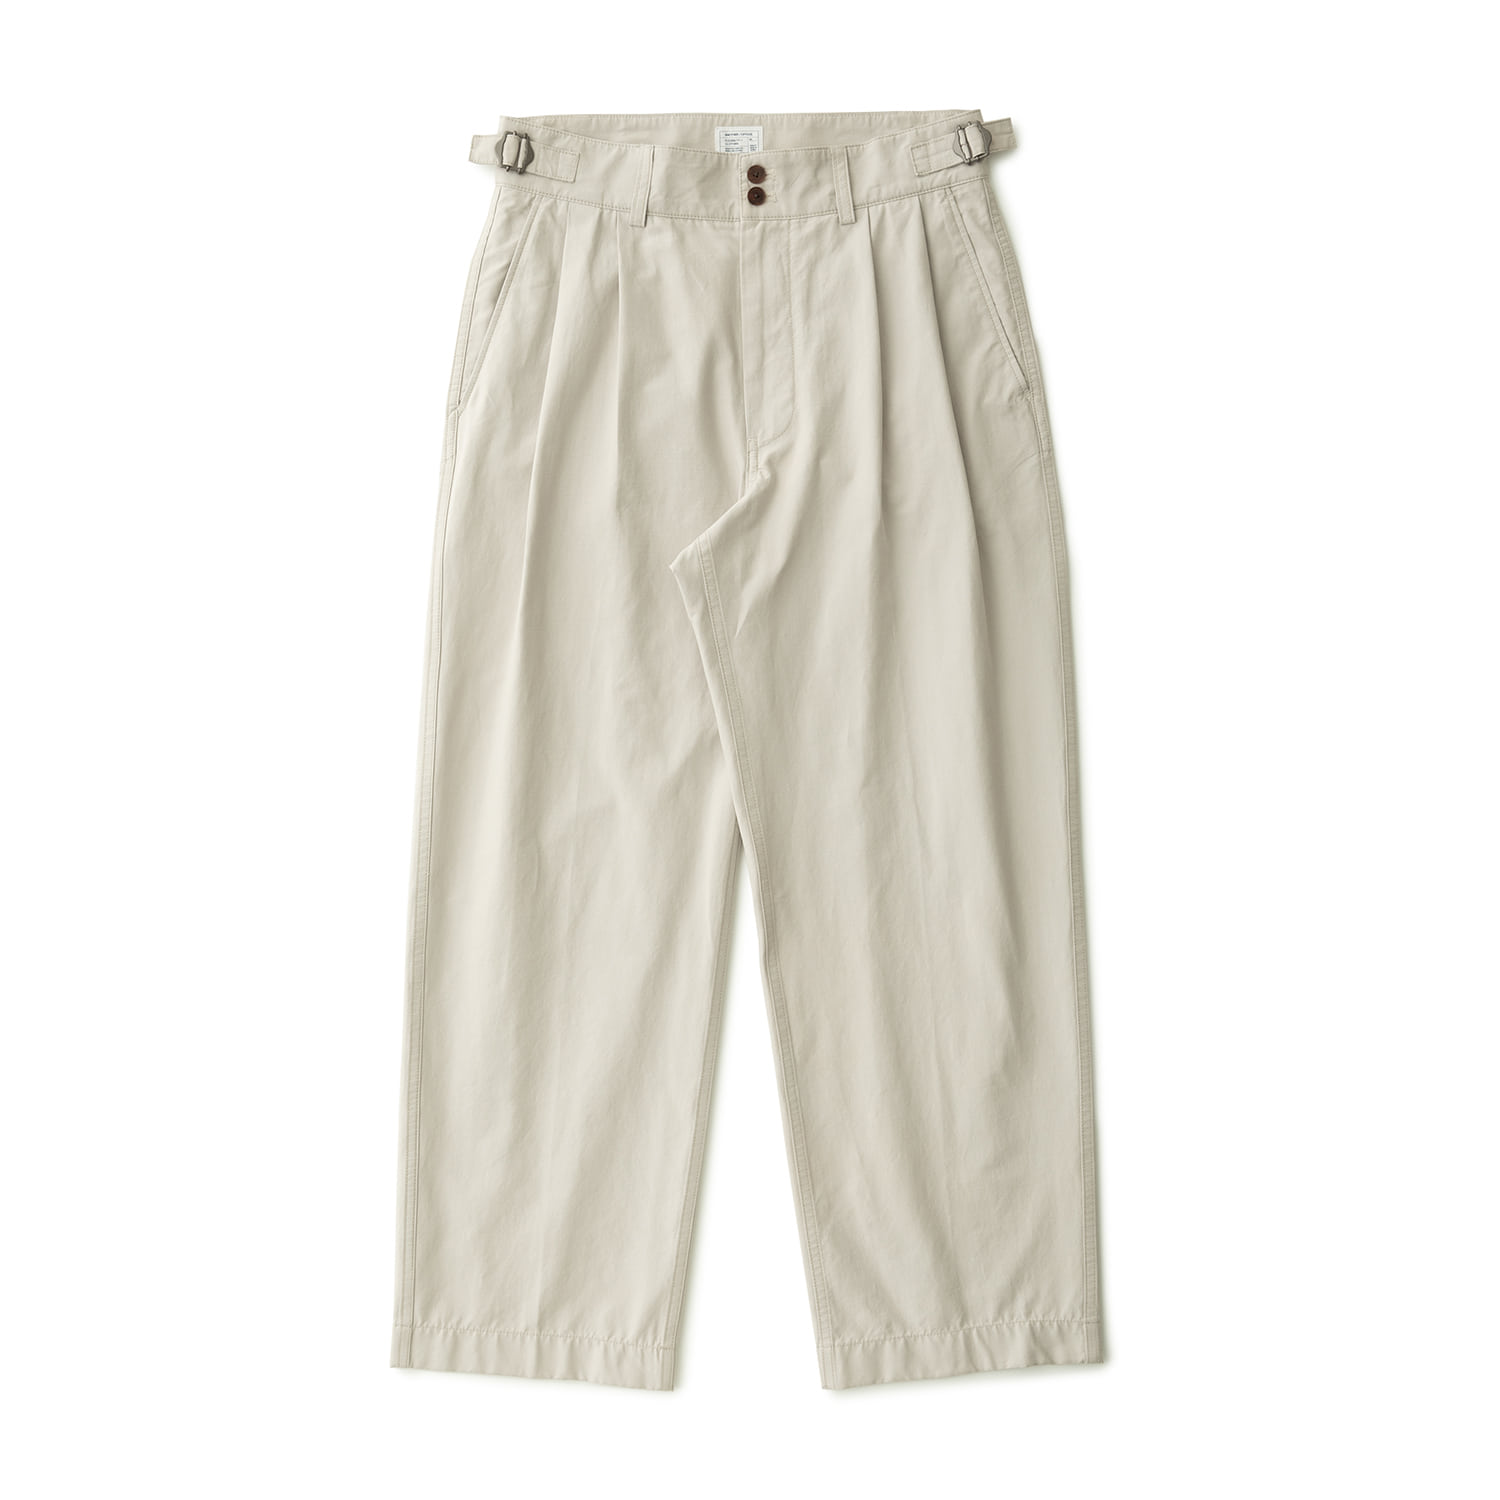 Santiago Doublecloth Pants (Almond Milk)